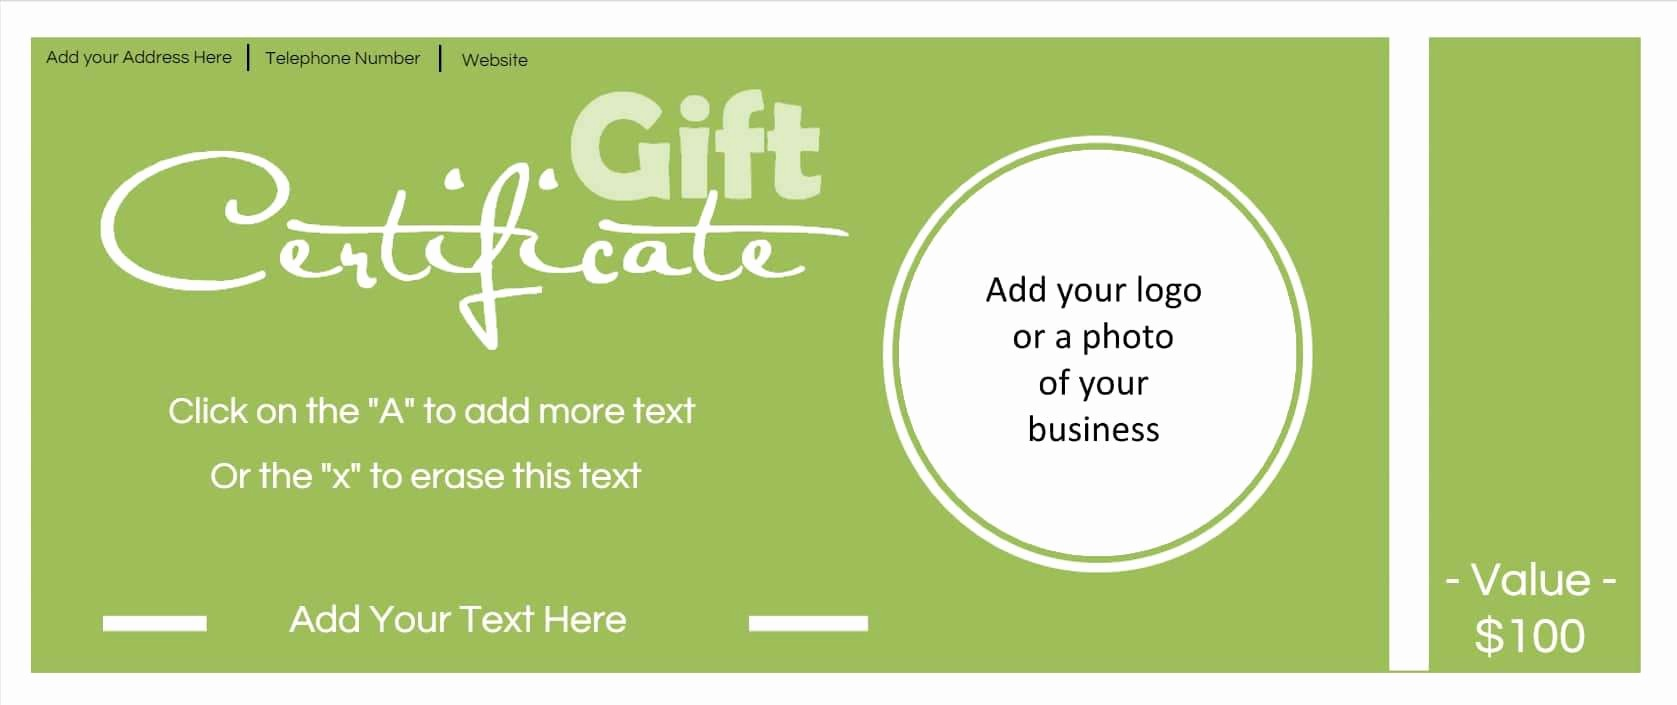 Free Printable Customizable Gift Certificates Awesome Gift Certificate Template with Logo